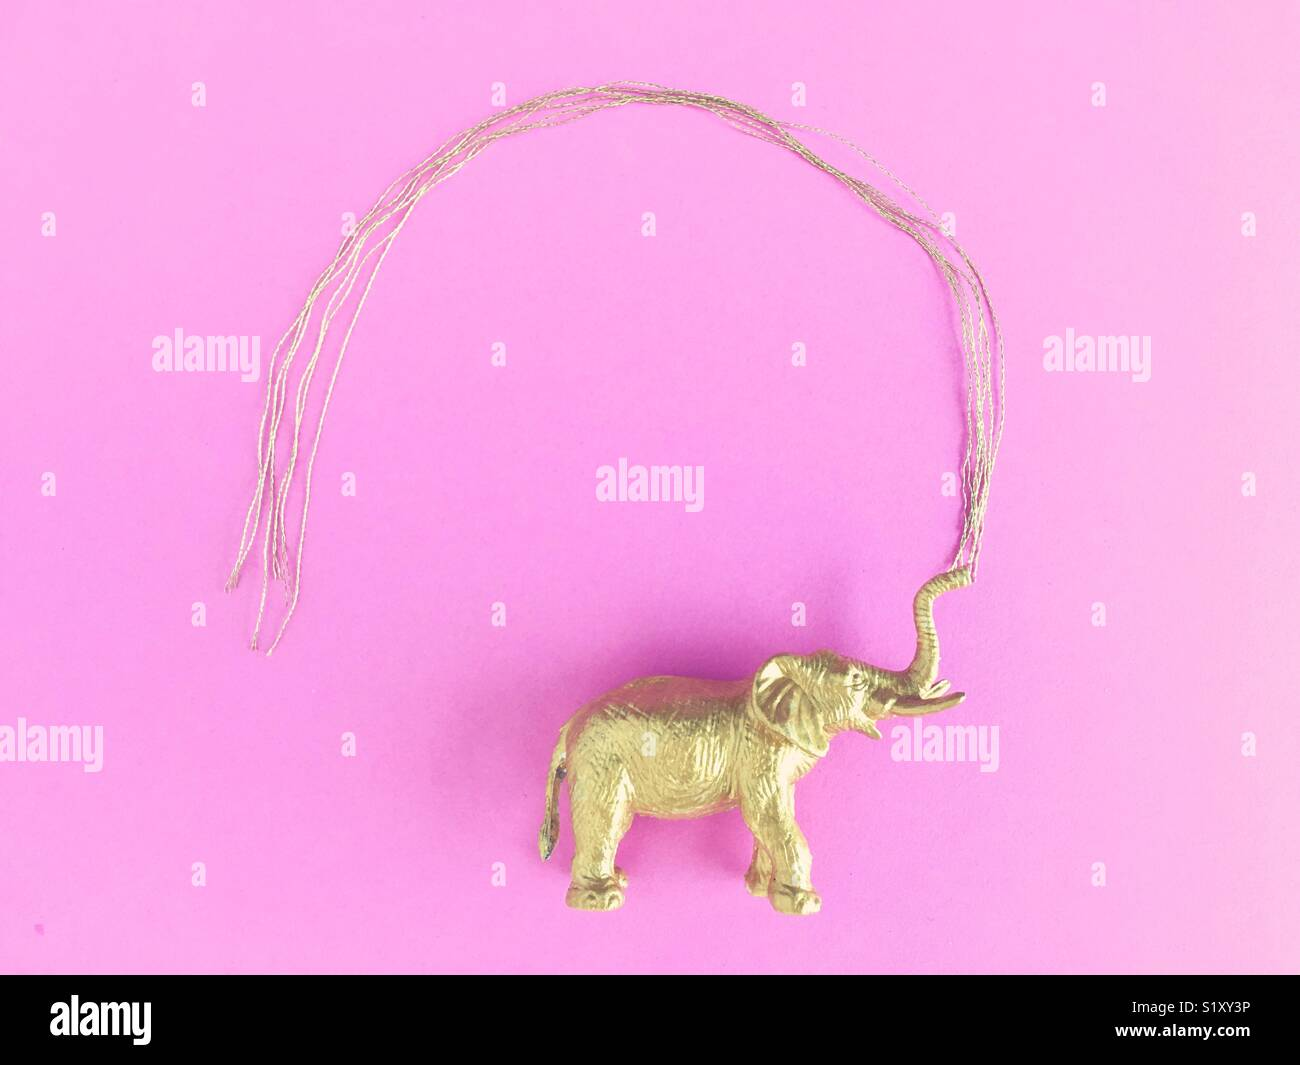 Conceptual: elephant spraying water in gold and pink. - Stock Image